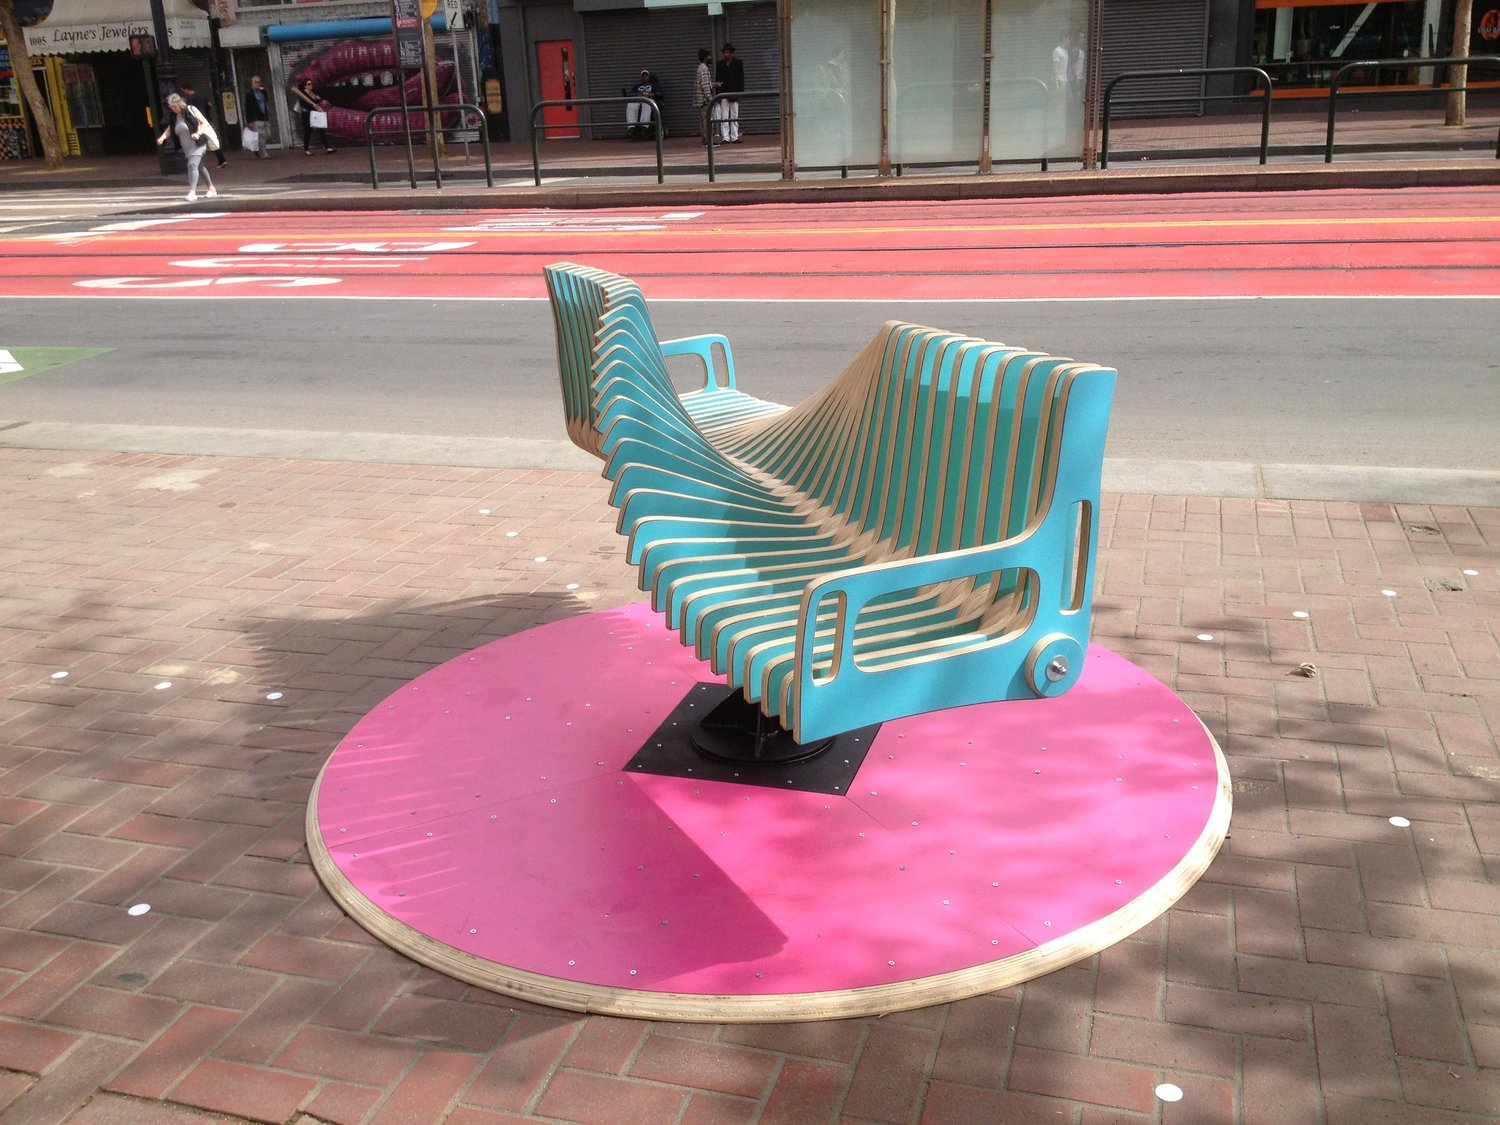 The Bench Go Round playfully re-imagines public seating to create connection between strangers. It's the creation of George Zisiadis and Rachel McConnell in San Francisco. Photo credit - George Zisiadis.